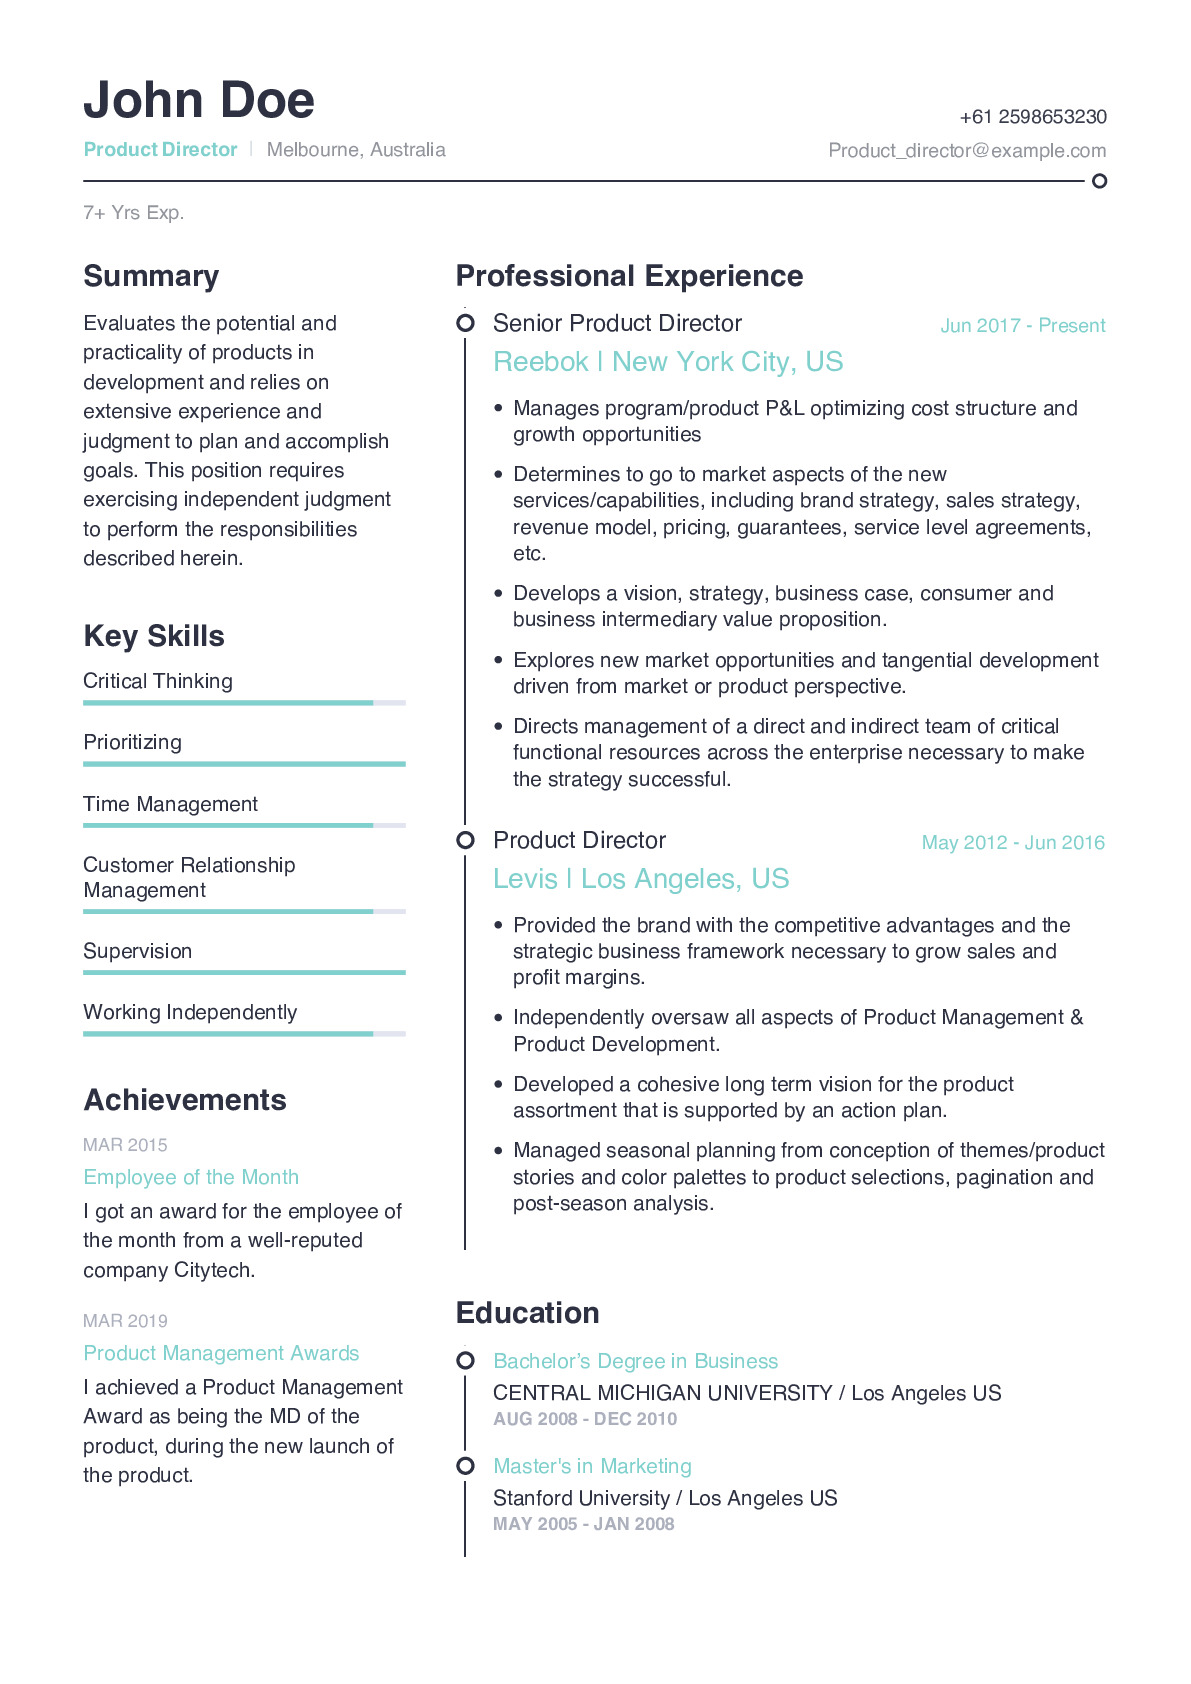 Product Director Resume Example